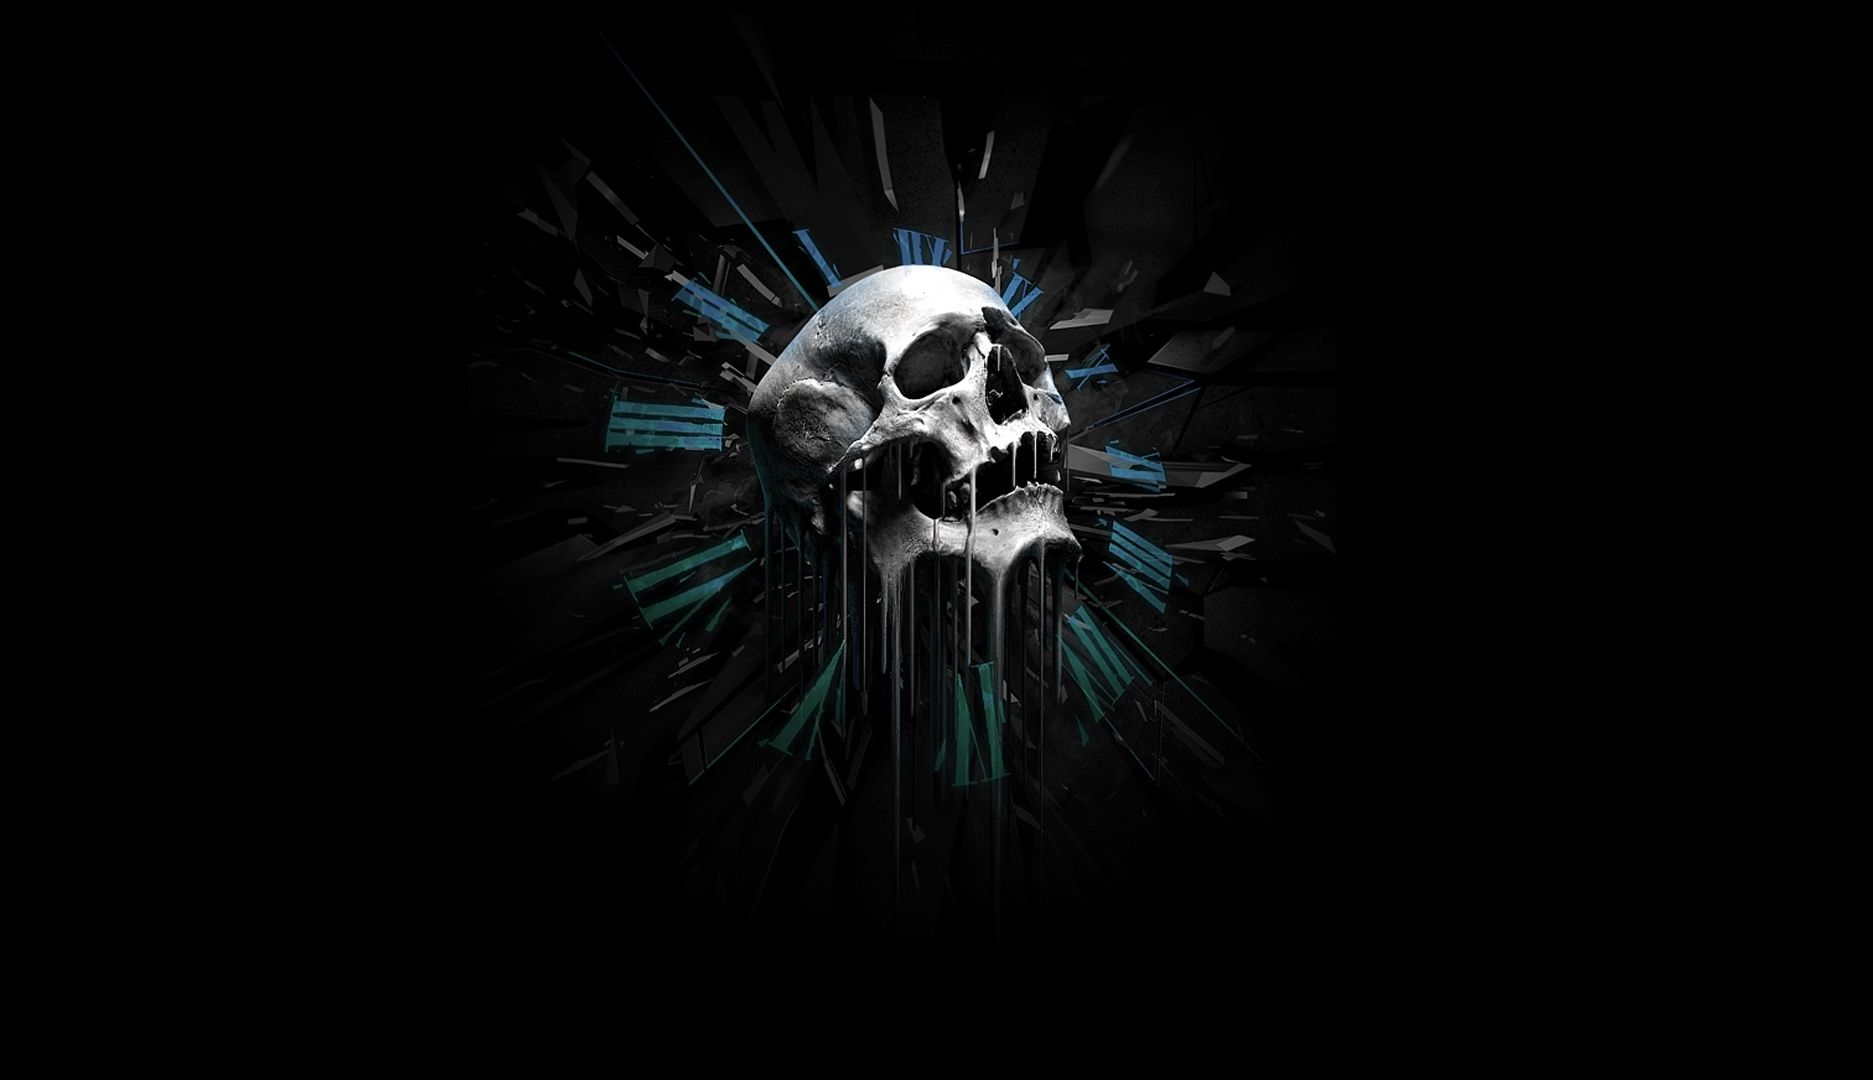 Free 3d skull wallpaper wallpapersafari Free 3d